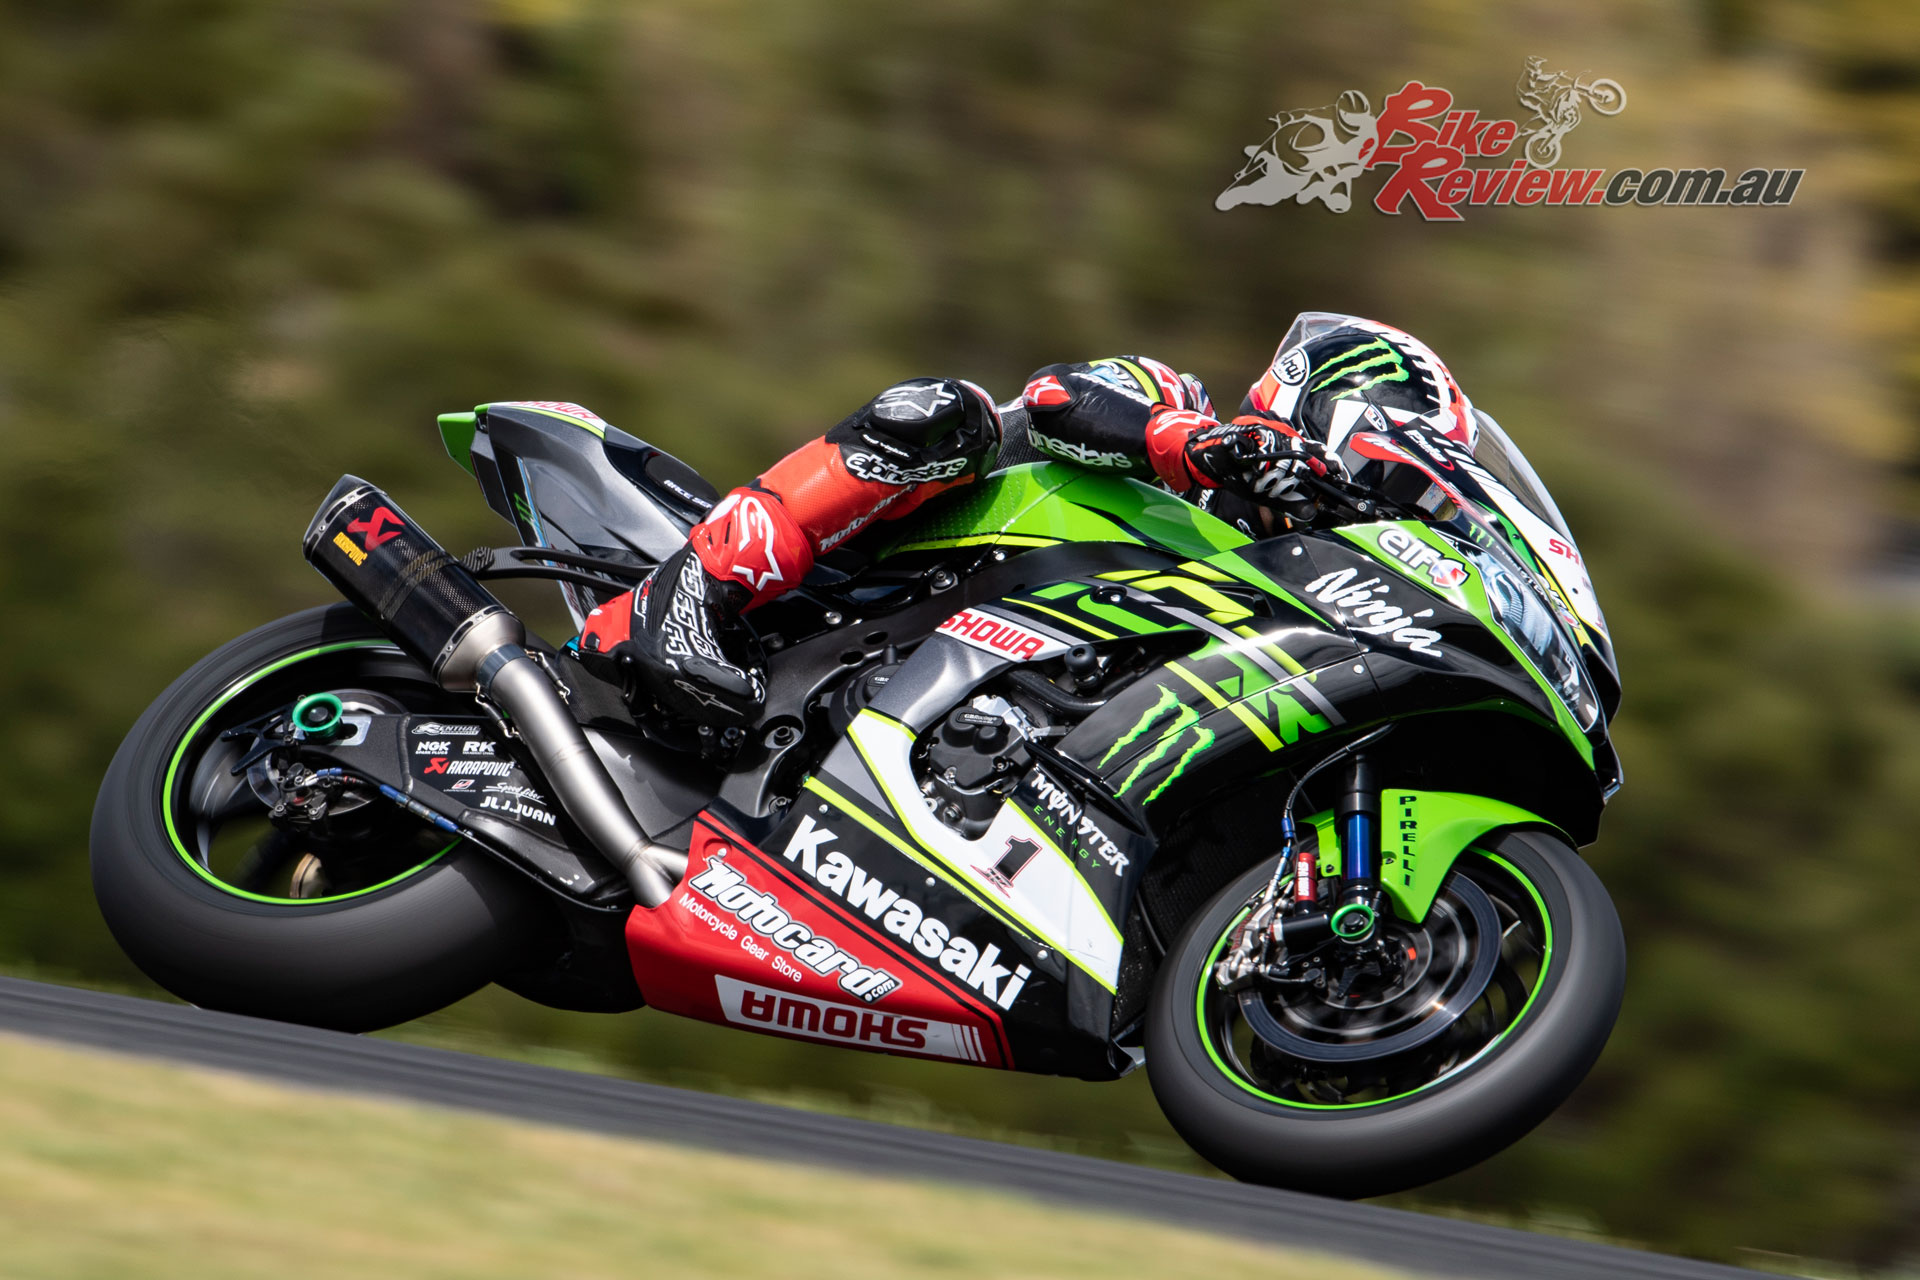 Jonathan Rea - Images by Geebee